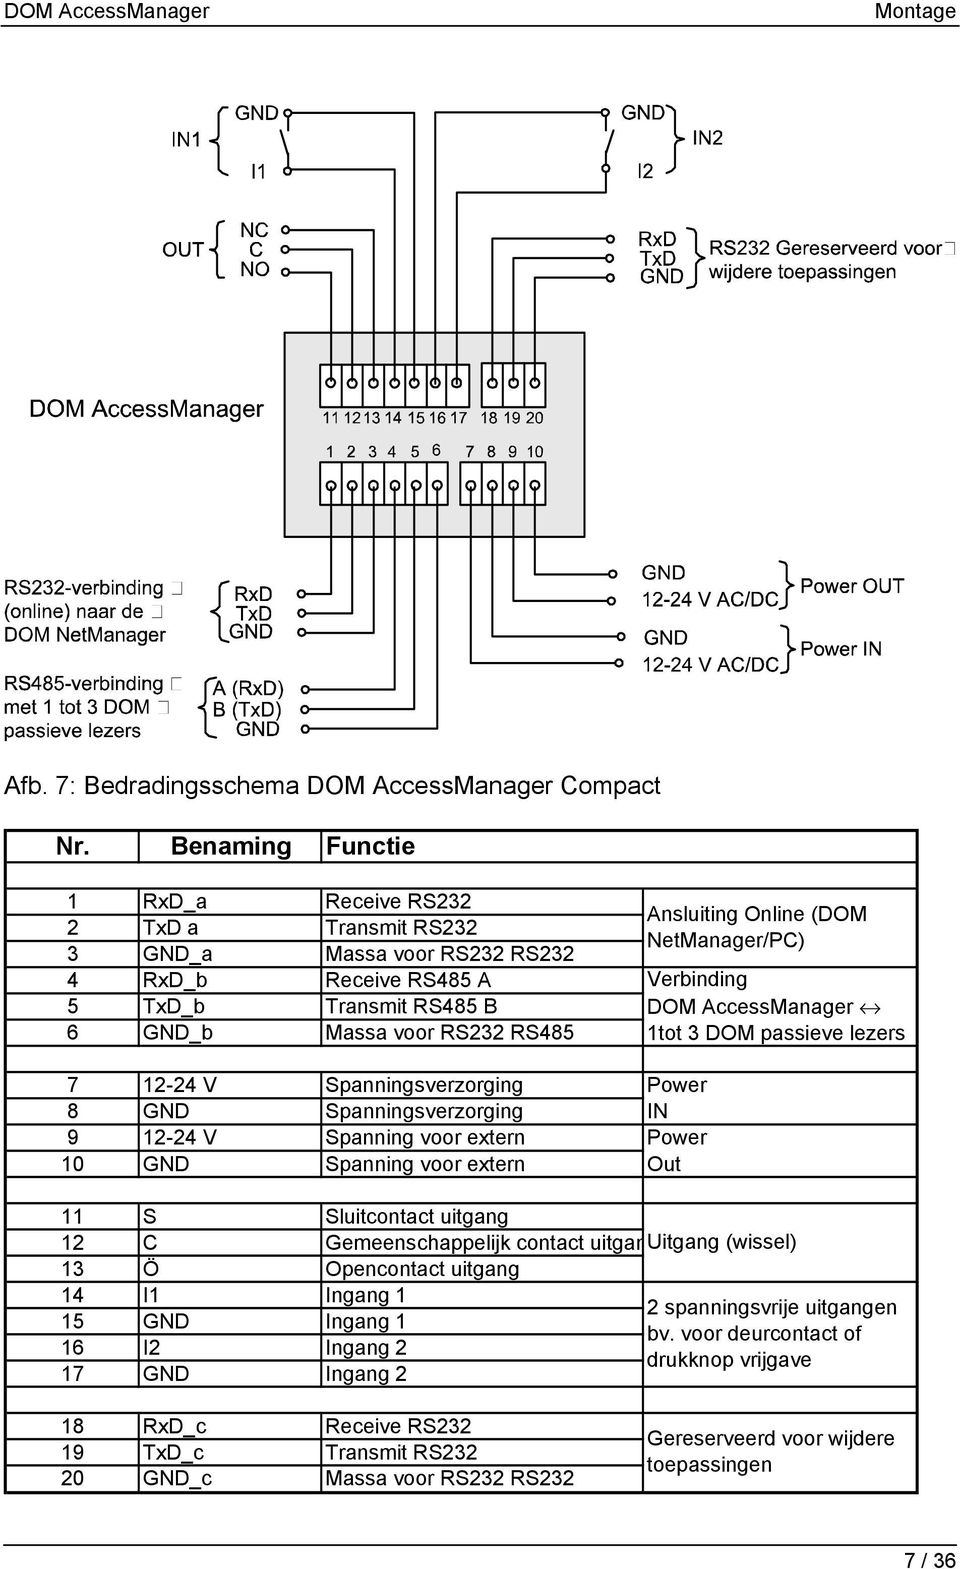 NetManager/PC) Verbinding DOM AccessManager 1tot 3 DOM passieve lezers 7 12-24 V Spanningsverzorging Power 8 GND Spanningsverzorging IN 9 12-24 V Spanning voor extern Power 10 GND Spanning voor